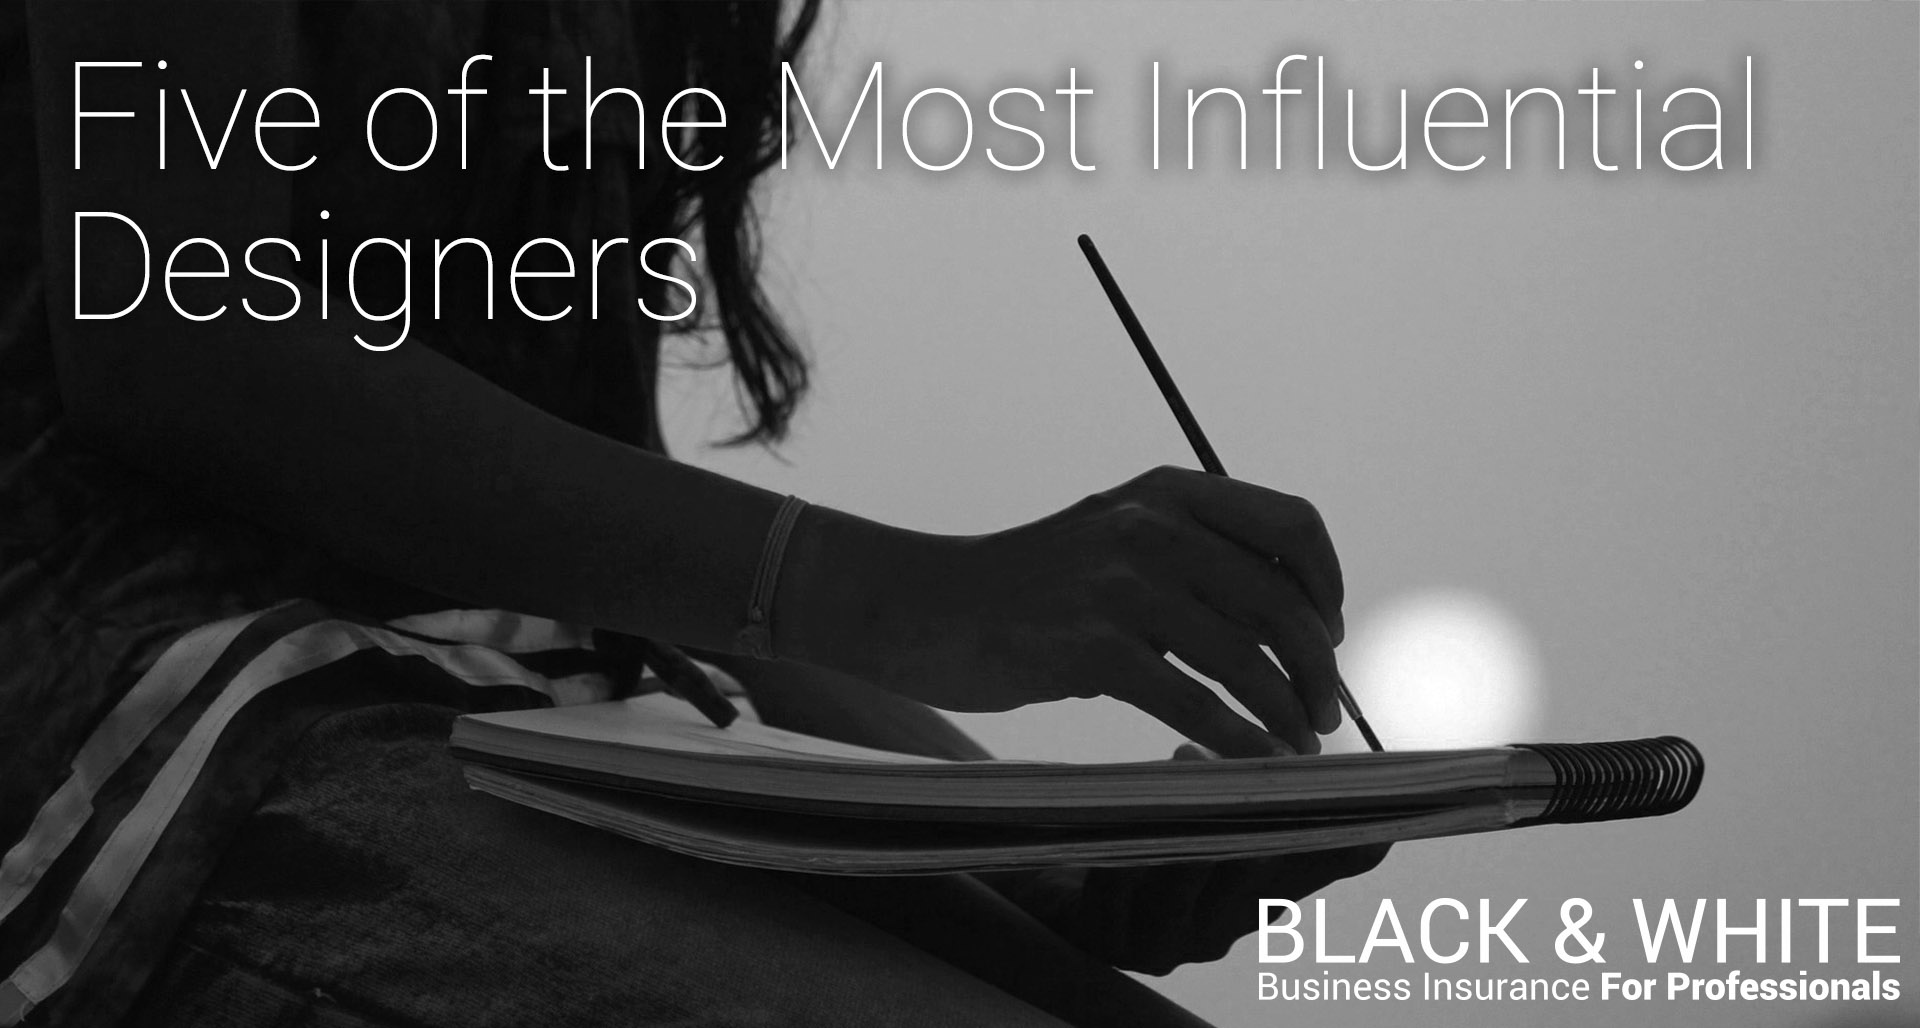 Five Of The Most Influential Designers Black And White Insurance View Larger Image Top